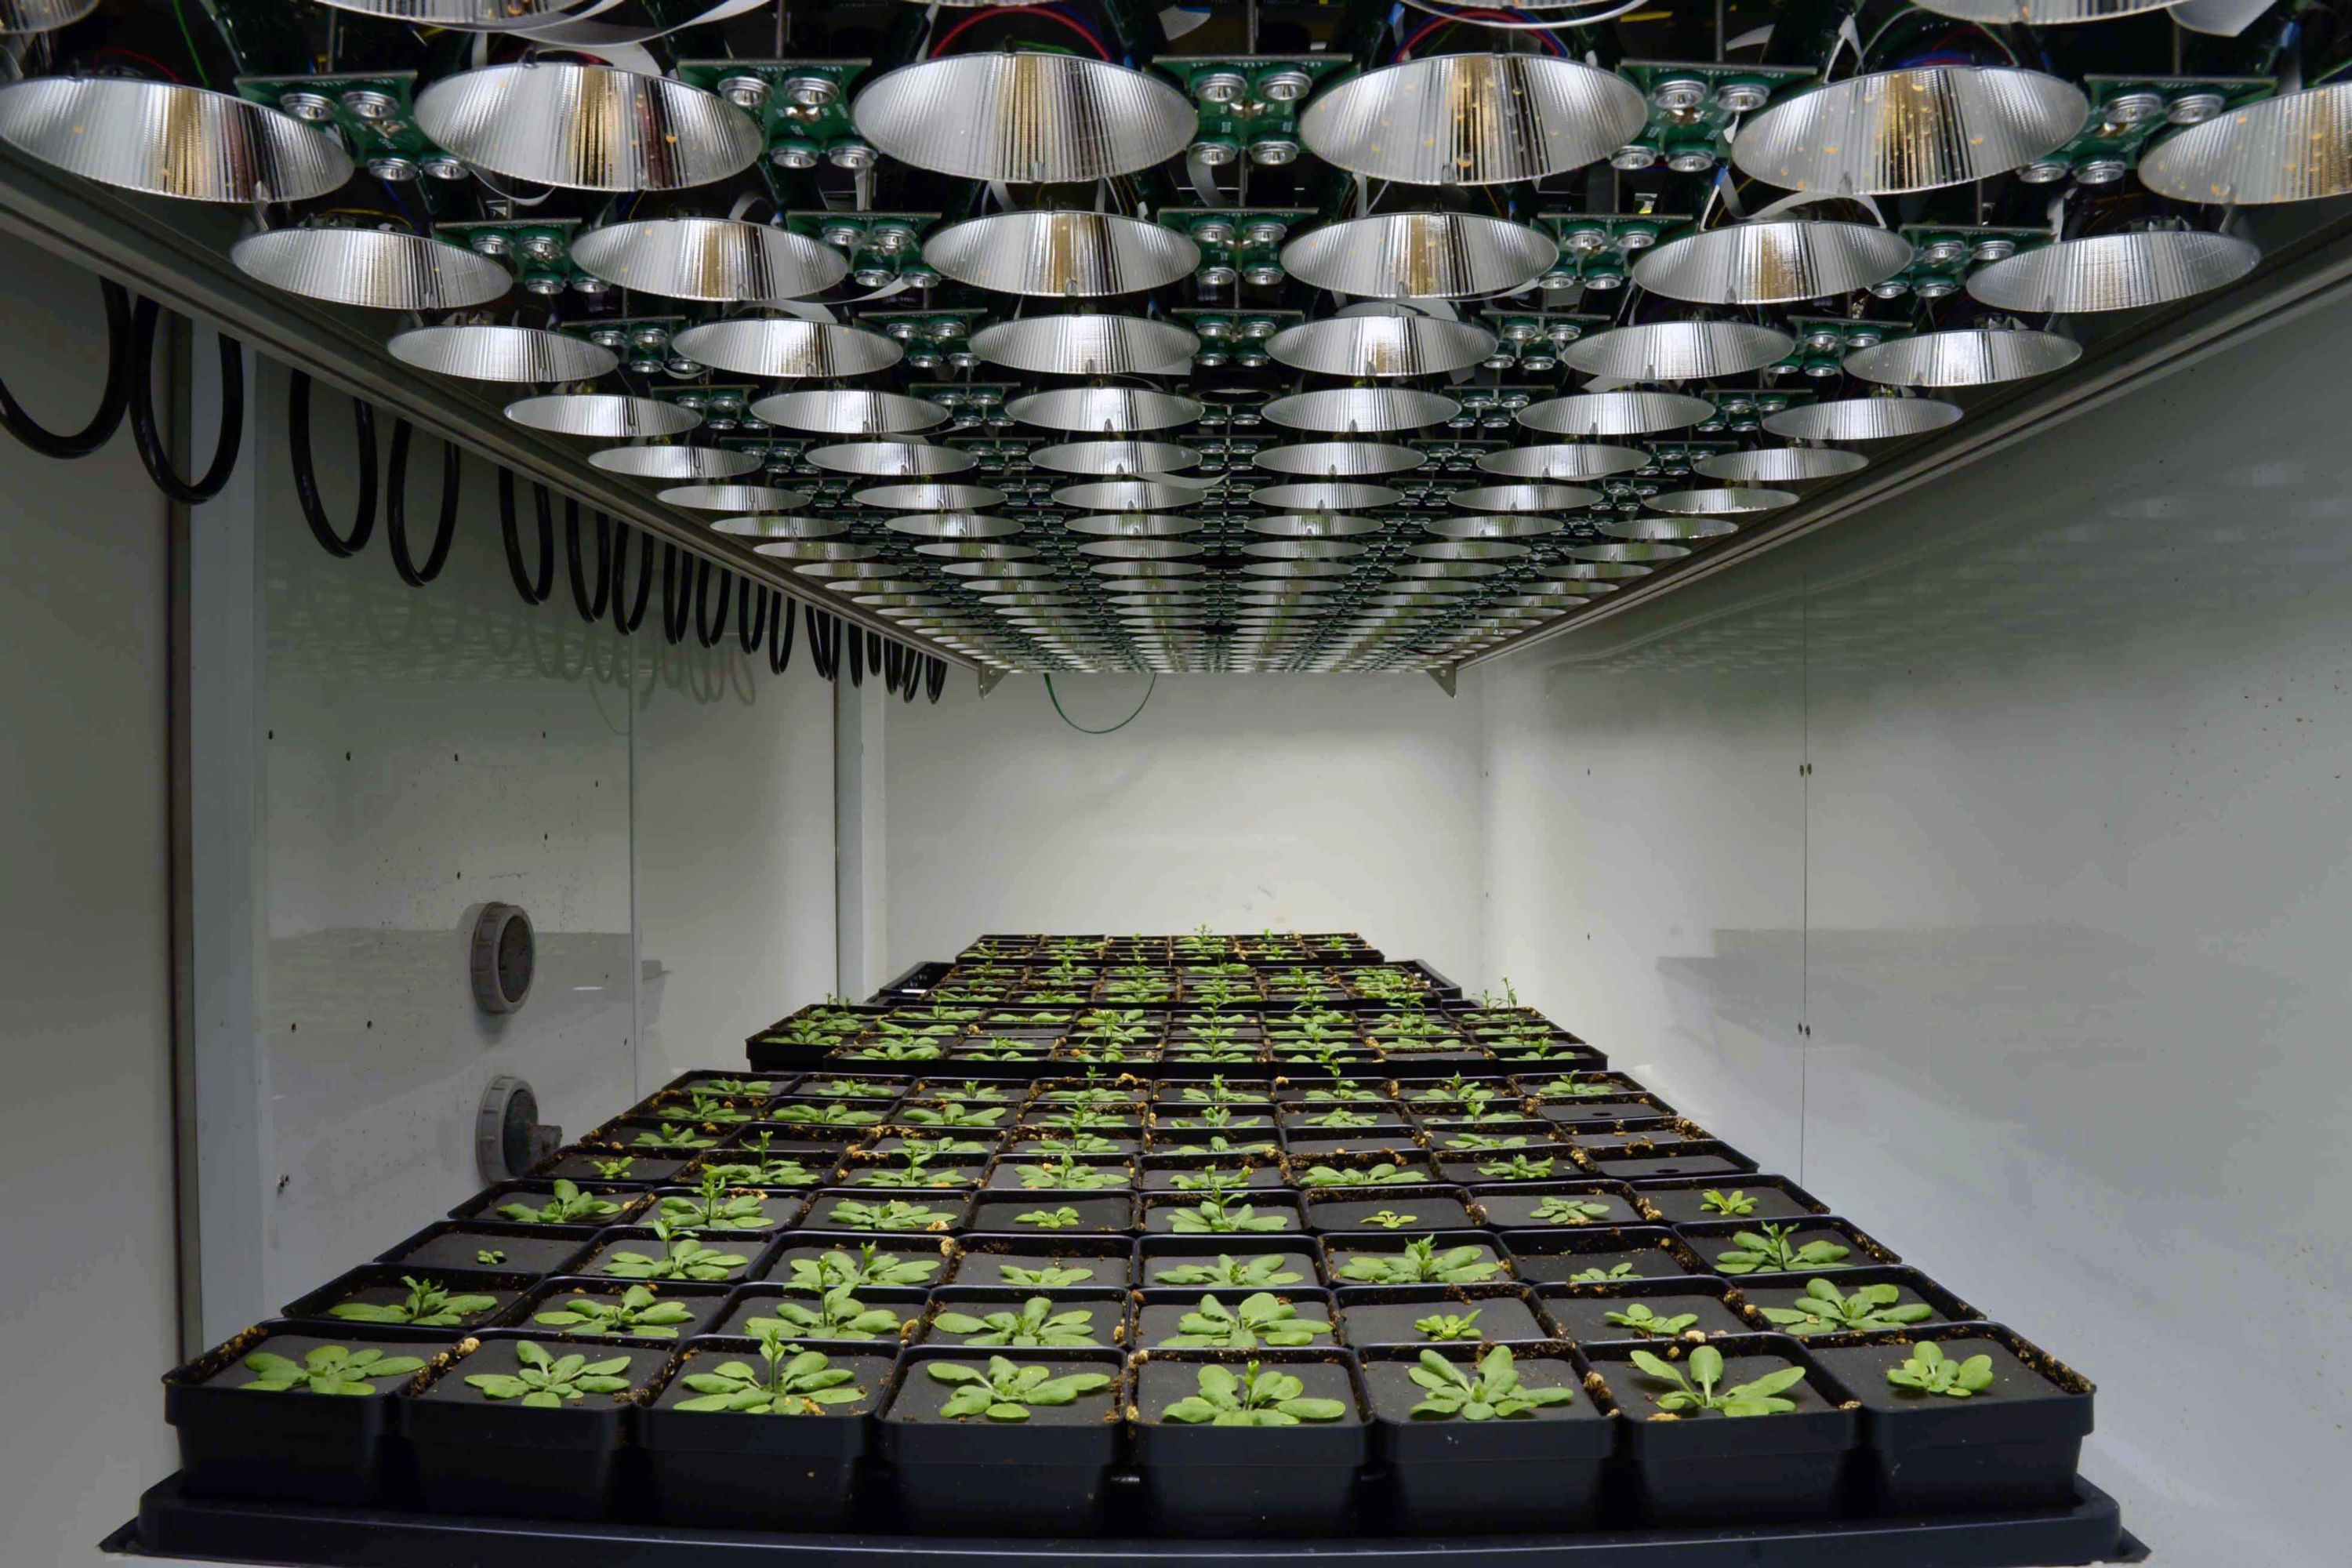 Image of the DEPI chamber, with lights and plants ready to be tested.